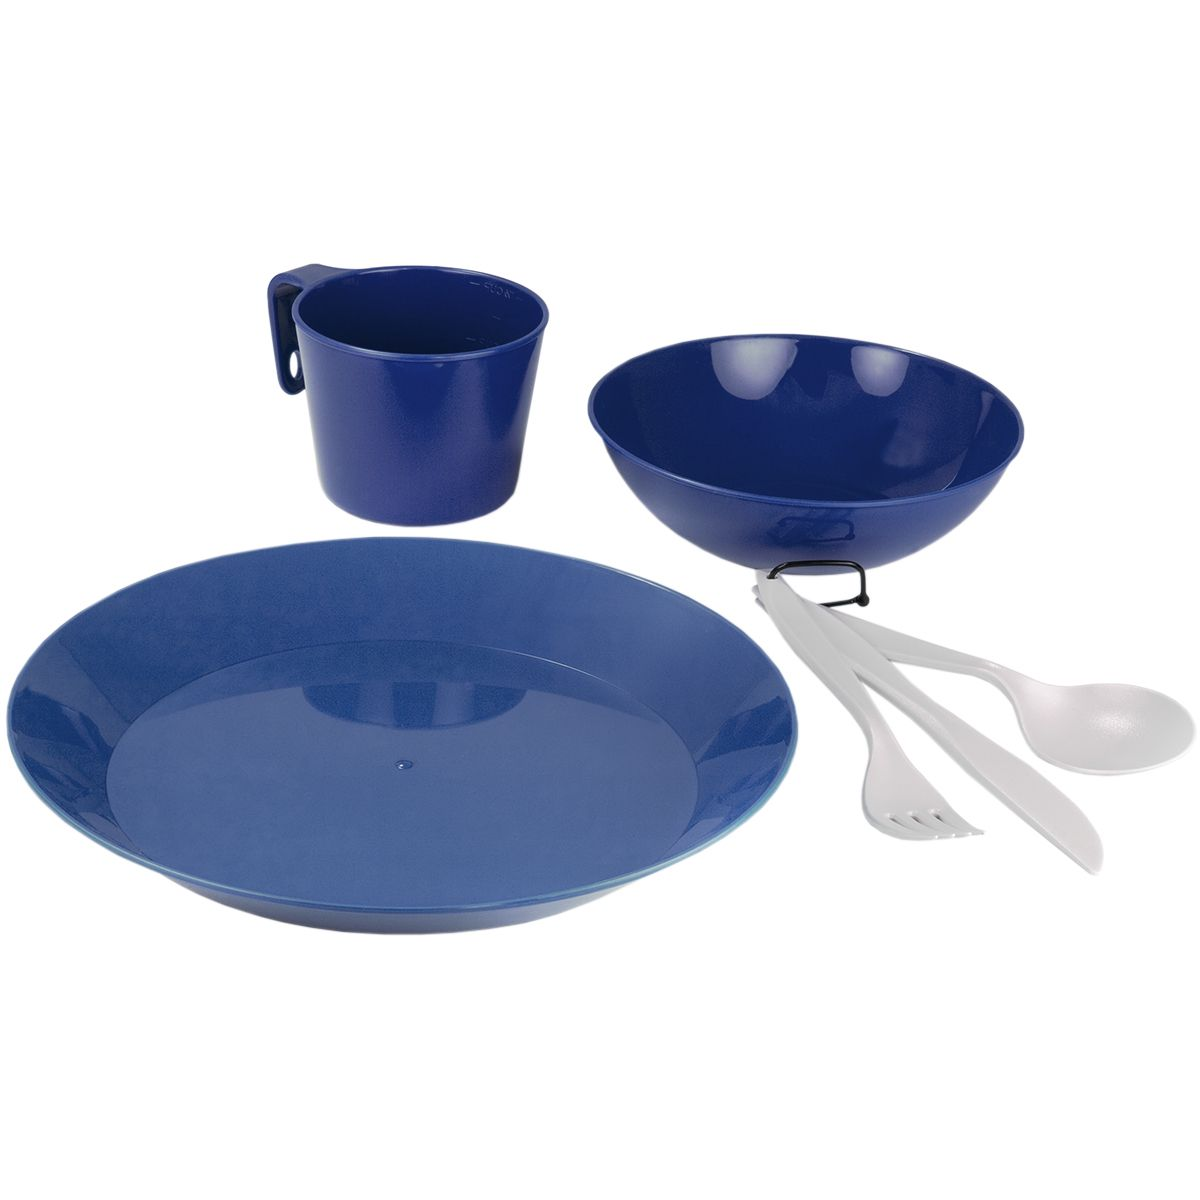 Image of GSI Cascadian 1 Person Table Set (Blau)